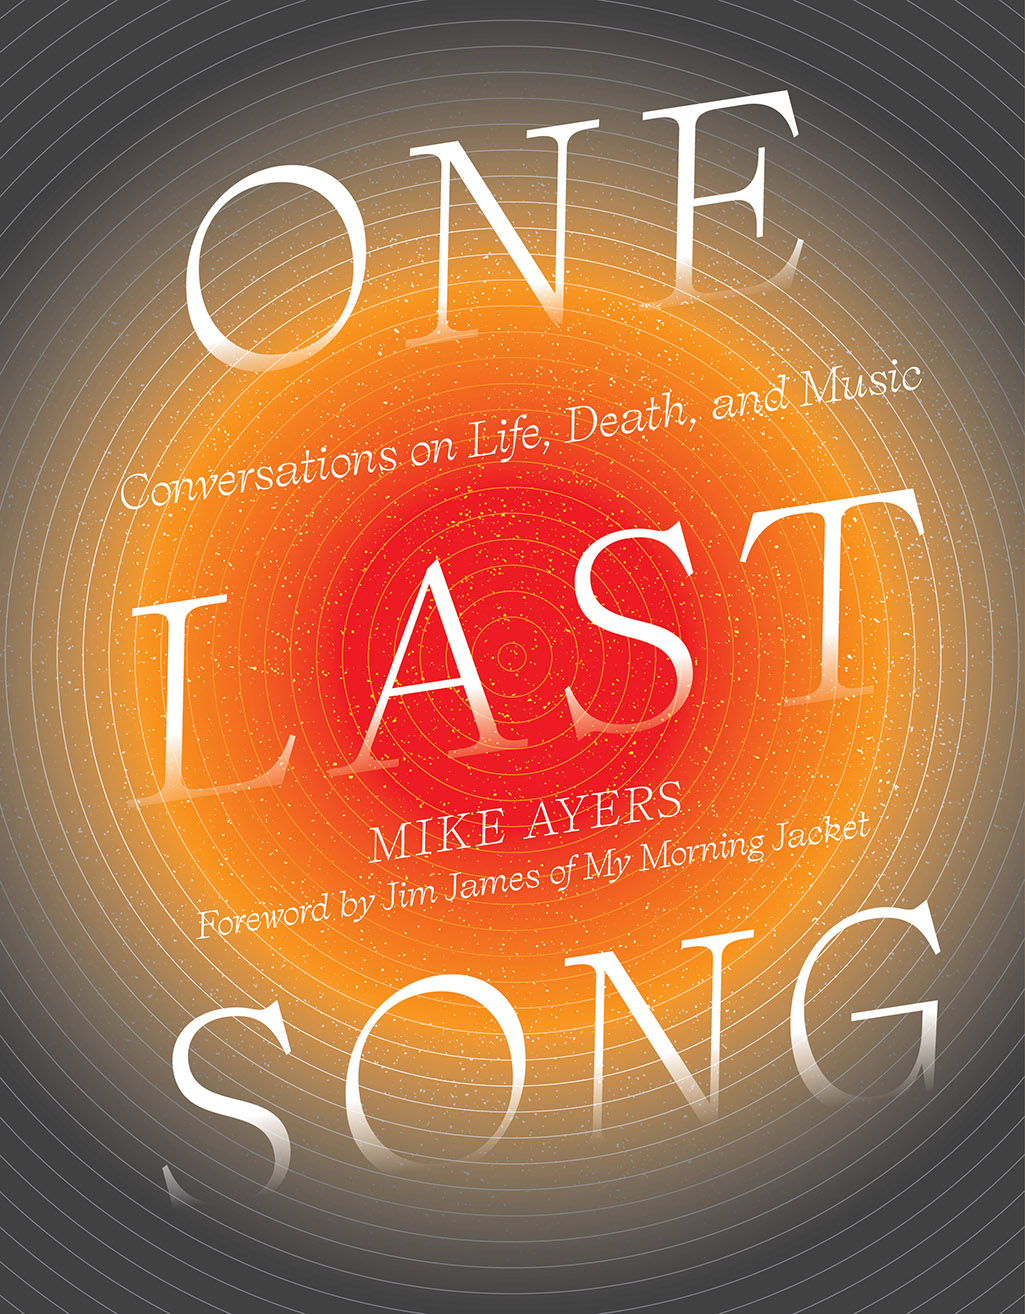 One Last Song: Conversations on Life, Death, and Music